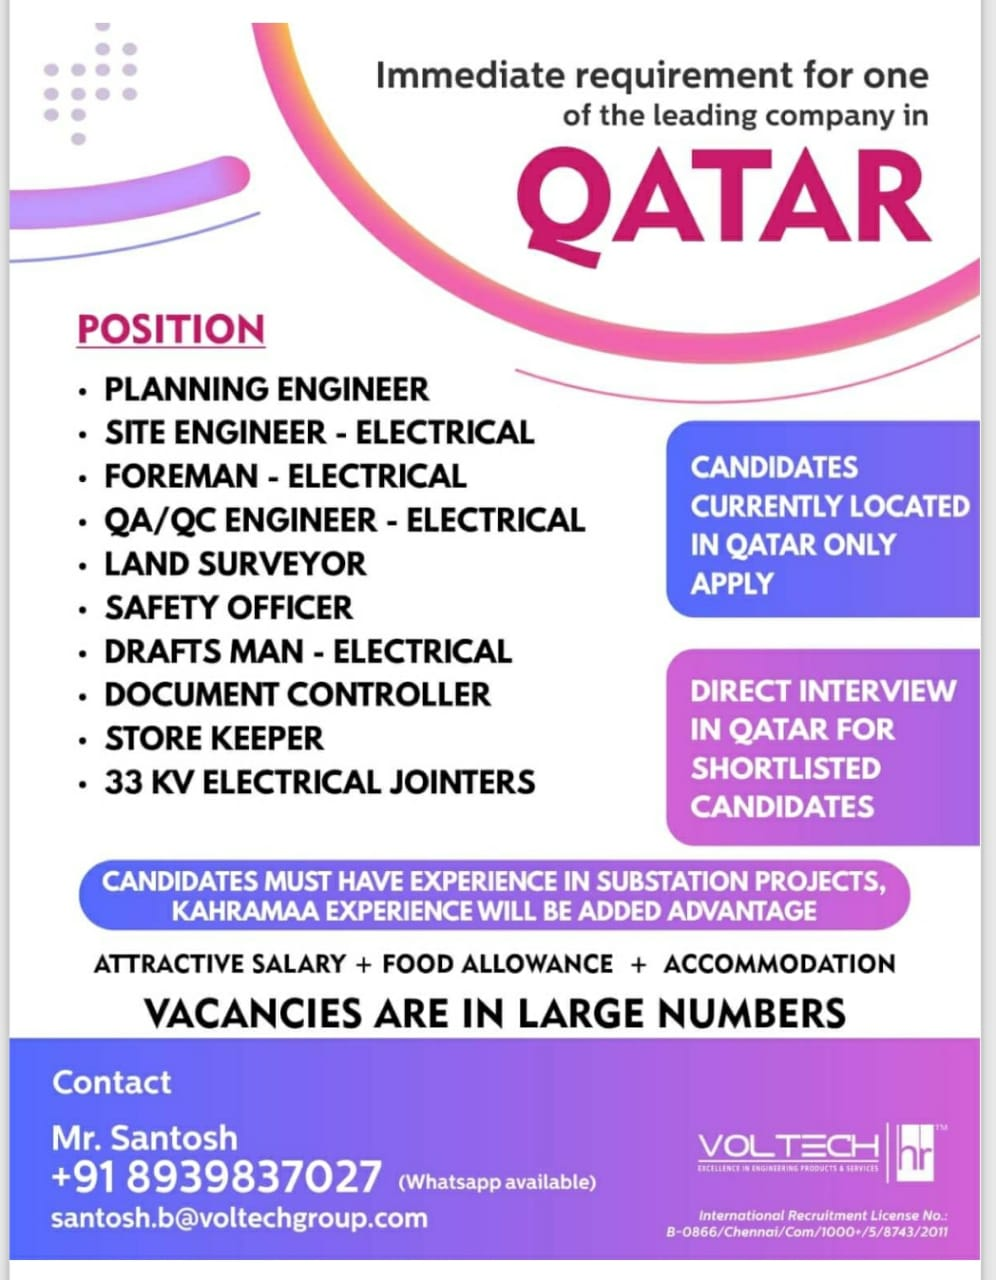 IMMEDIATE REQUIREMENT FOR ONE OF THE LEADING COMPANY IN QATAR